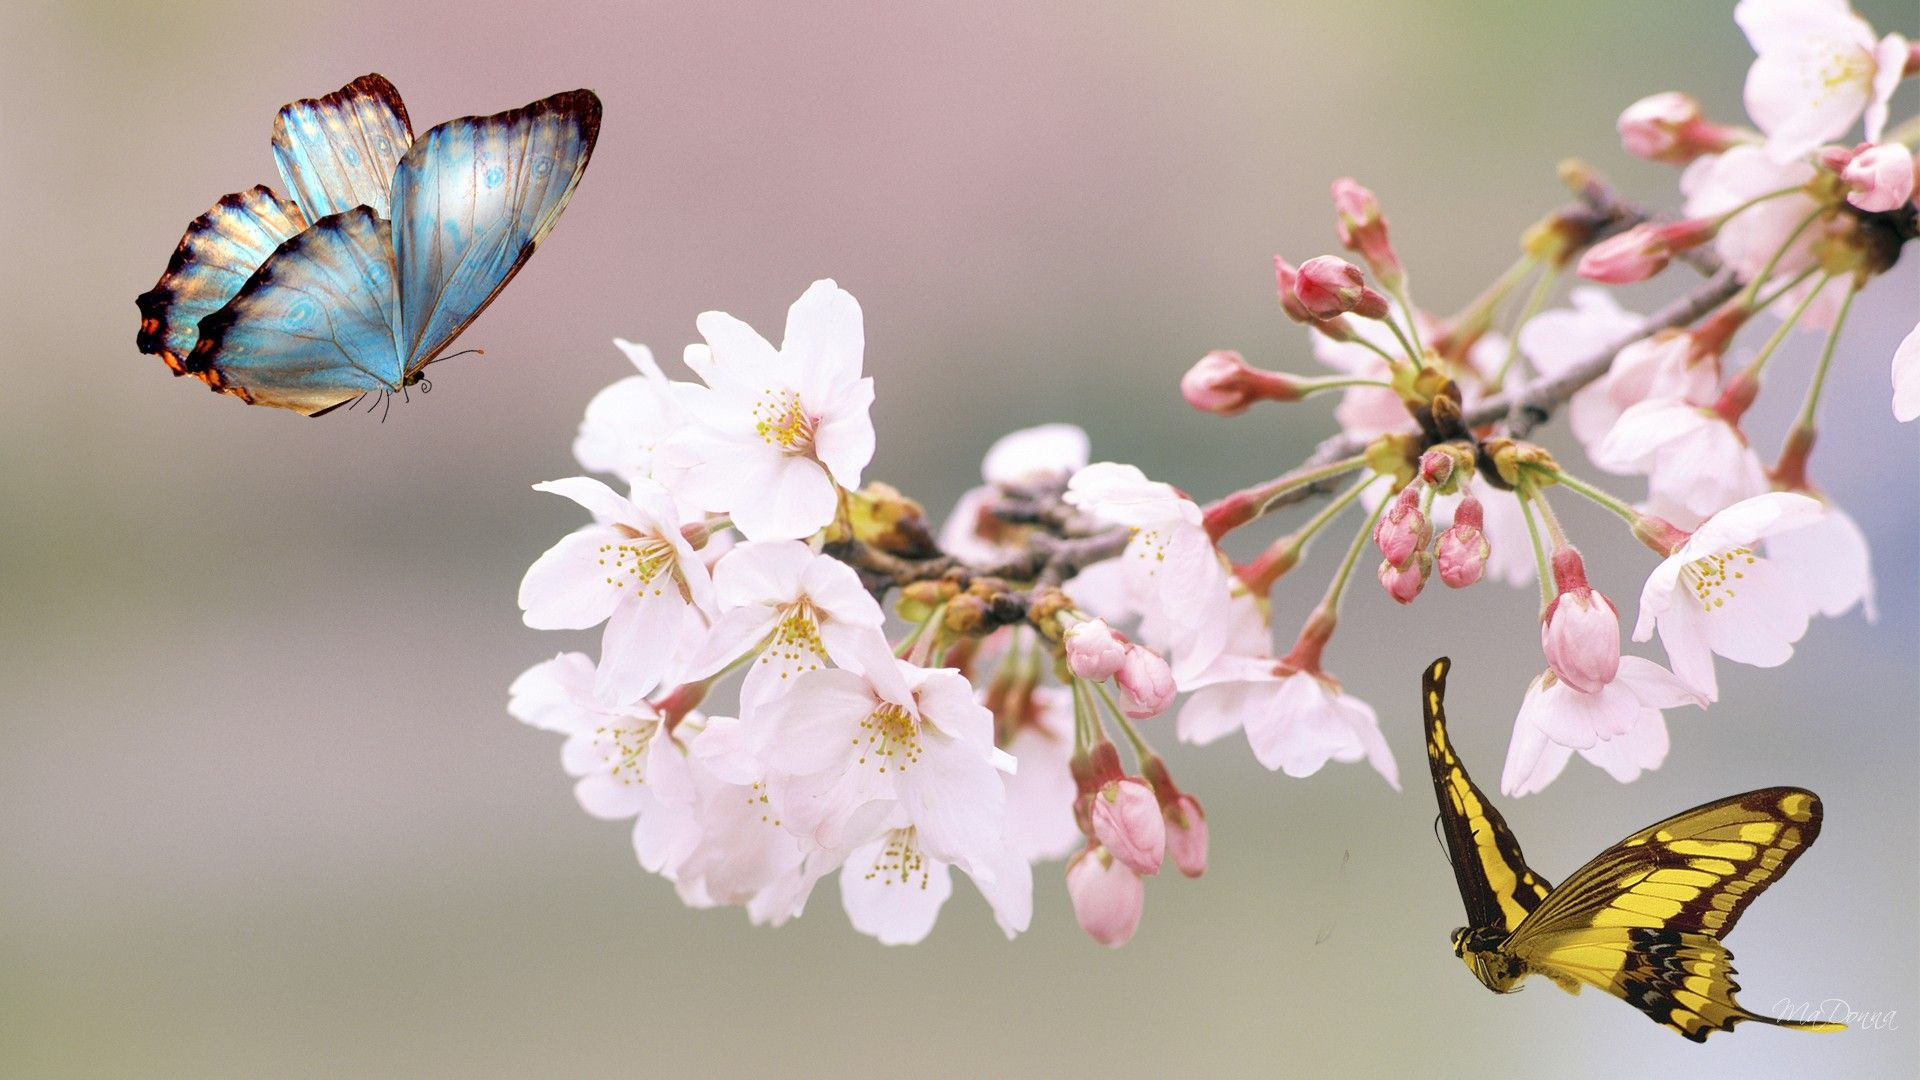 53 Flowers and Butterflies Wallpapers Flower